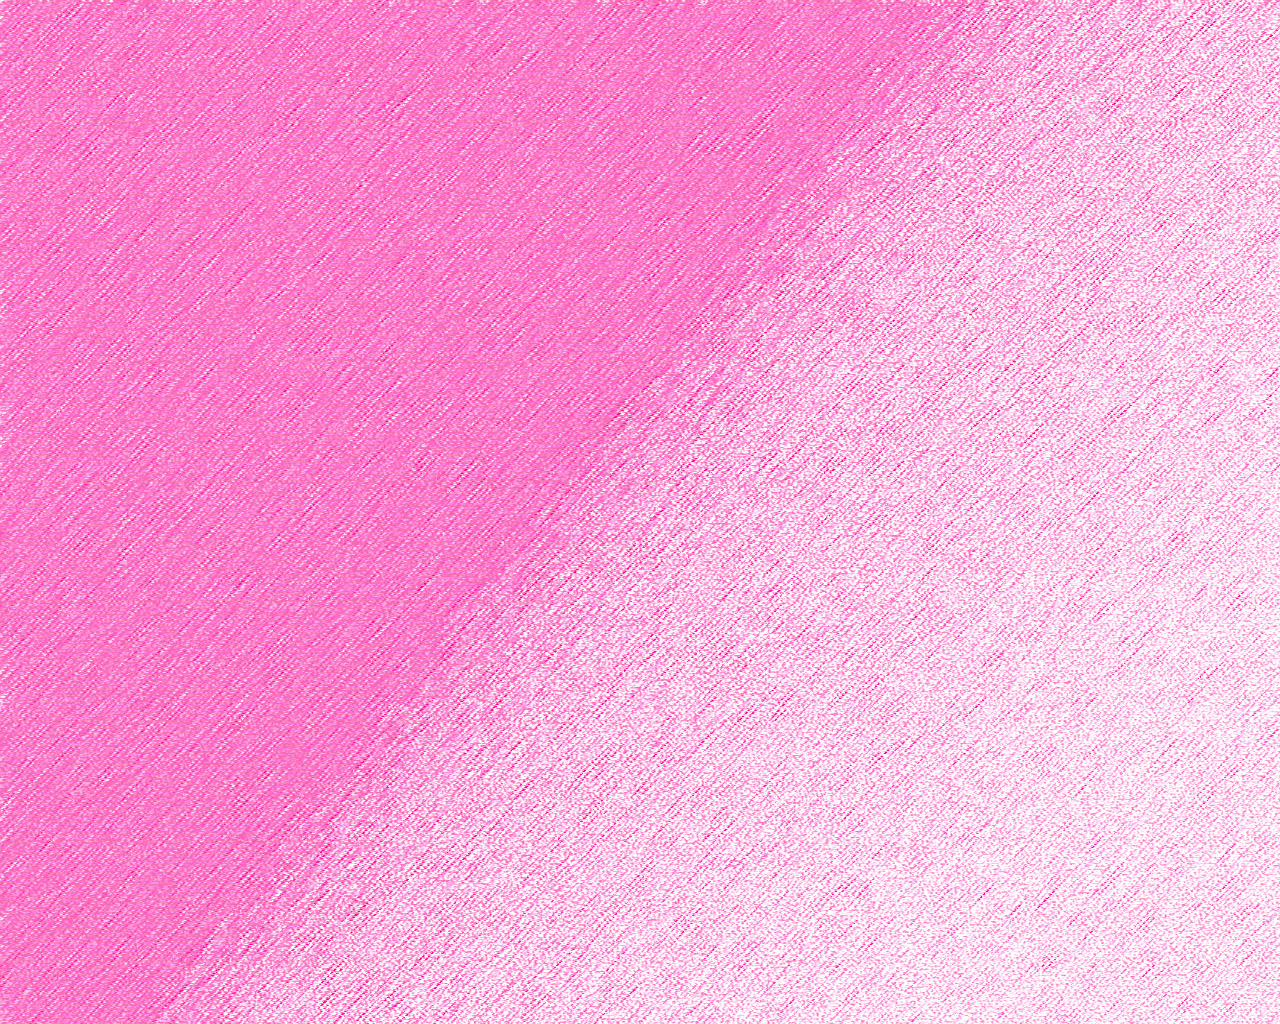 Pink Abstract Cute Really Backgrounds 1195987 With Resolutions 1280 1280x1024